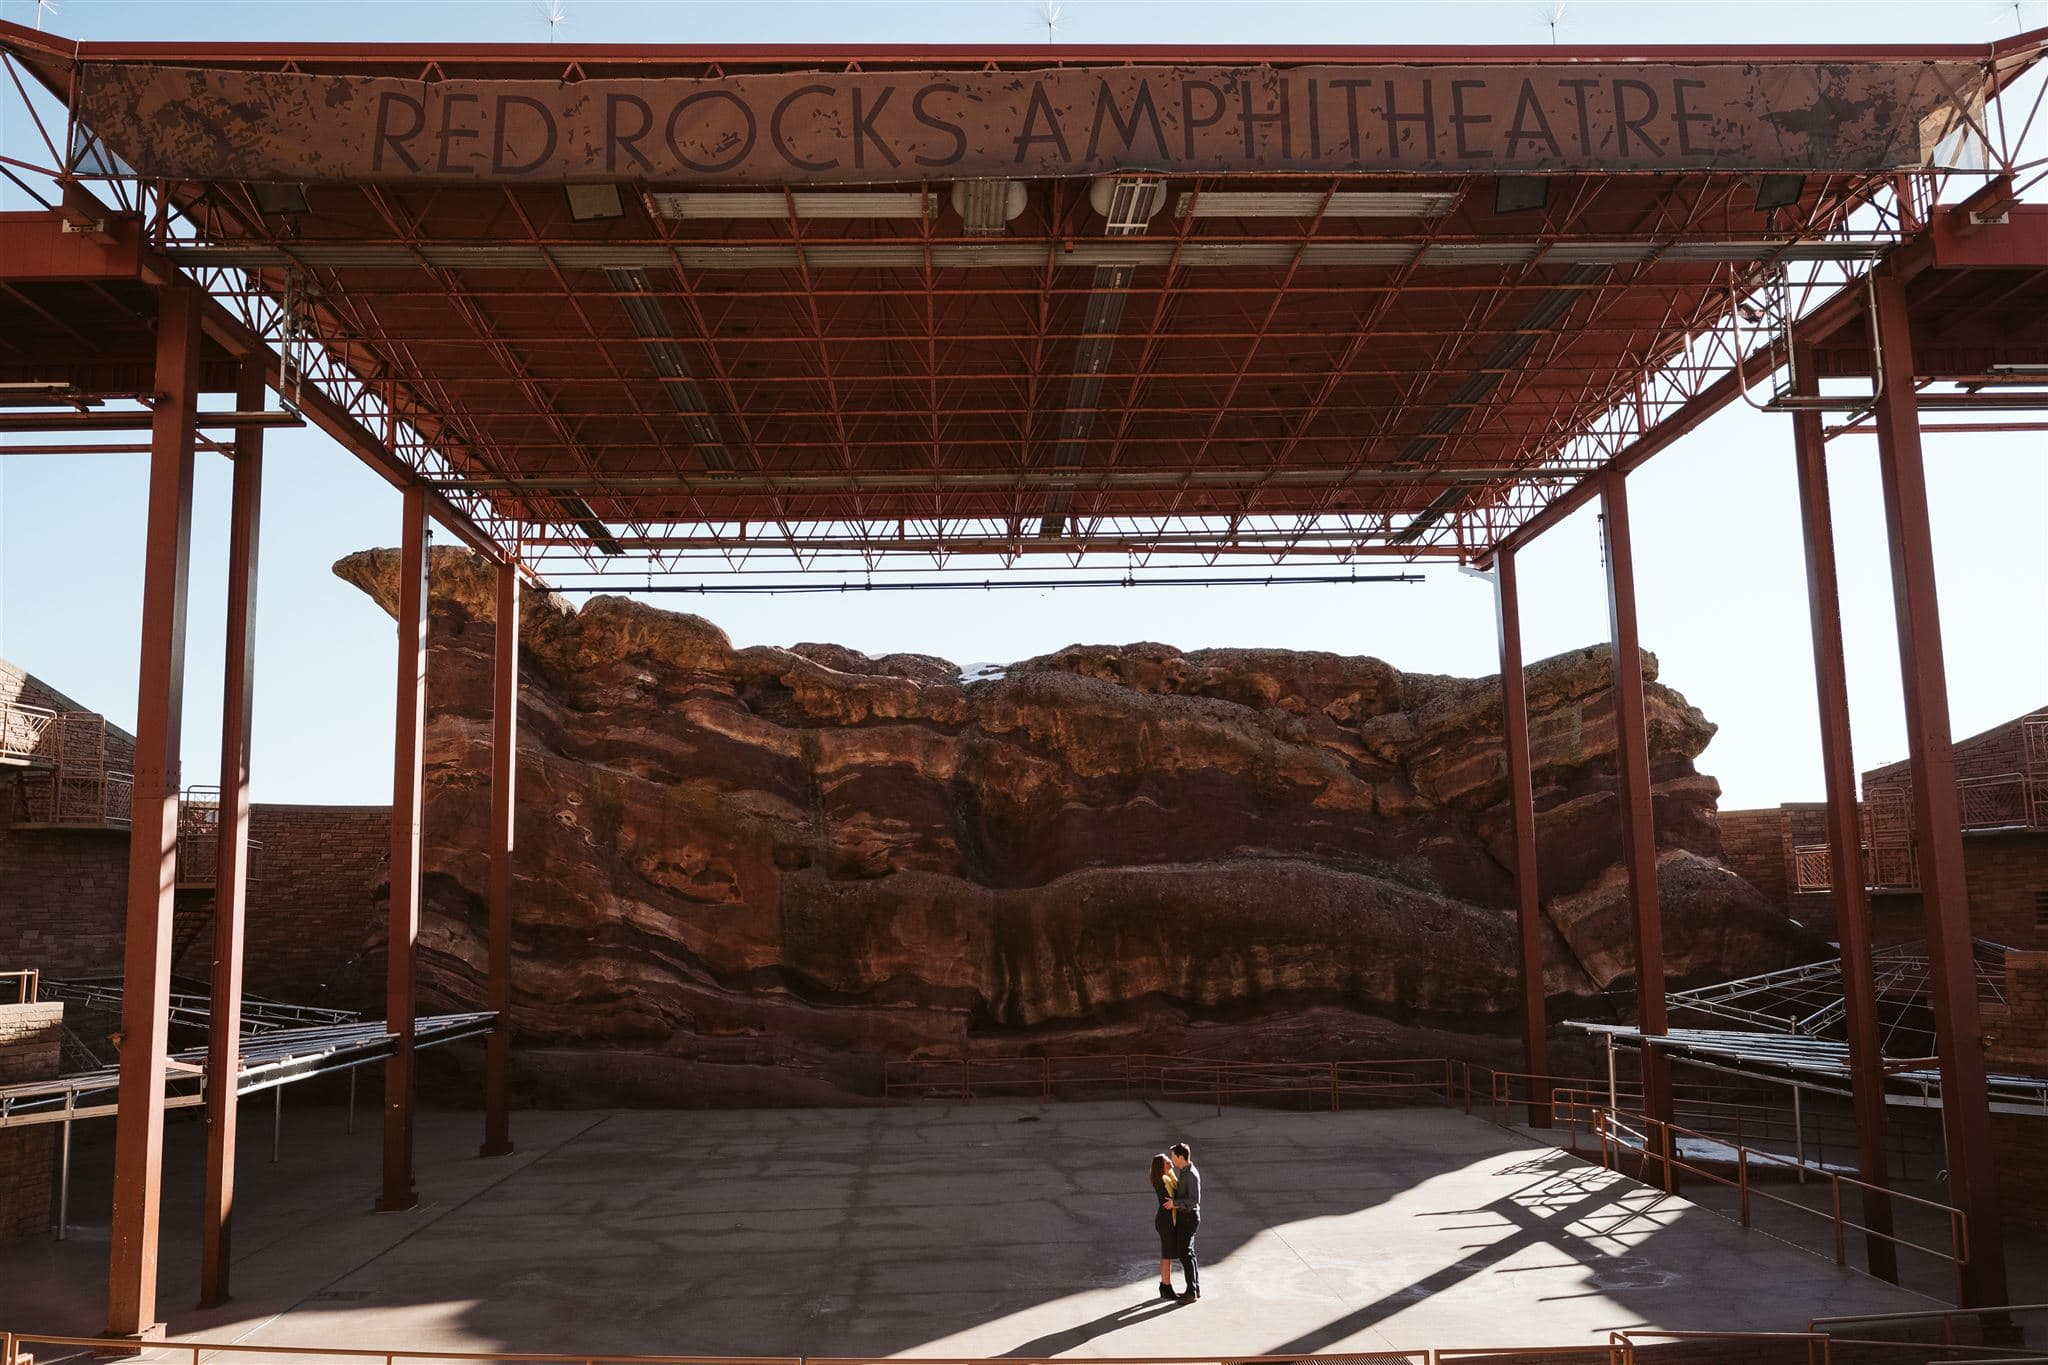 Red Rocks Amphitheater engagement session